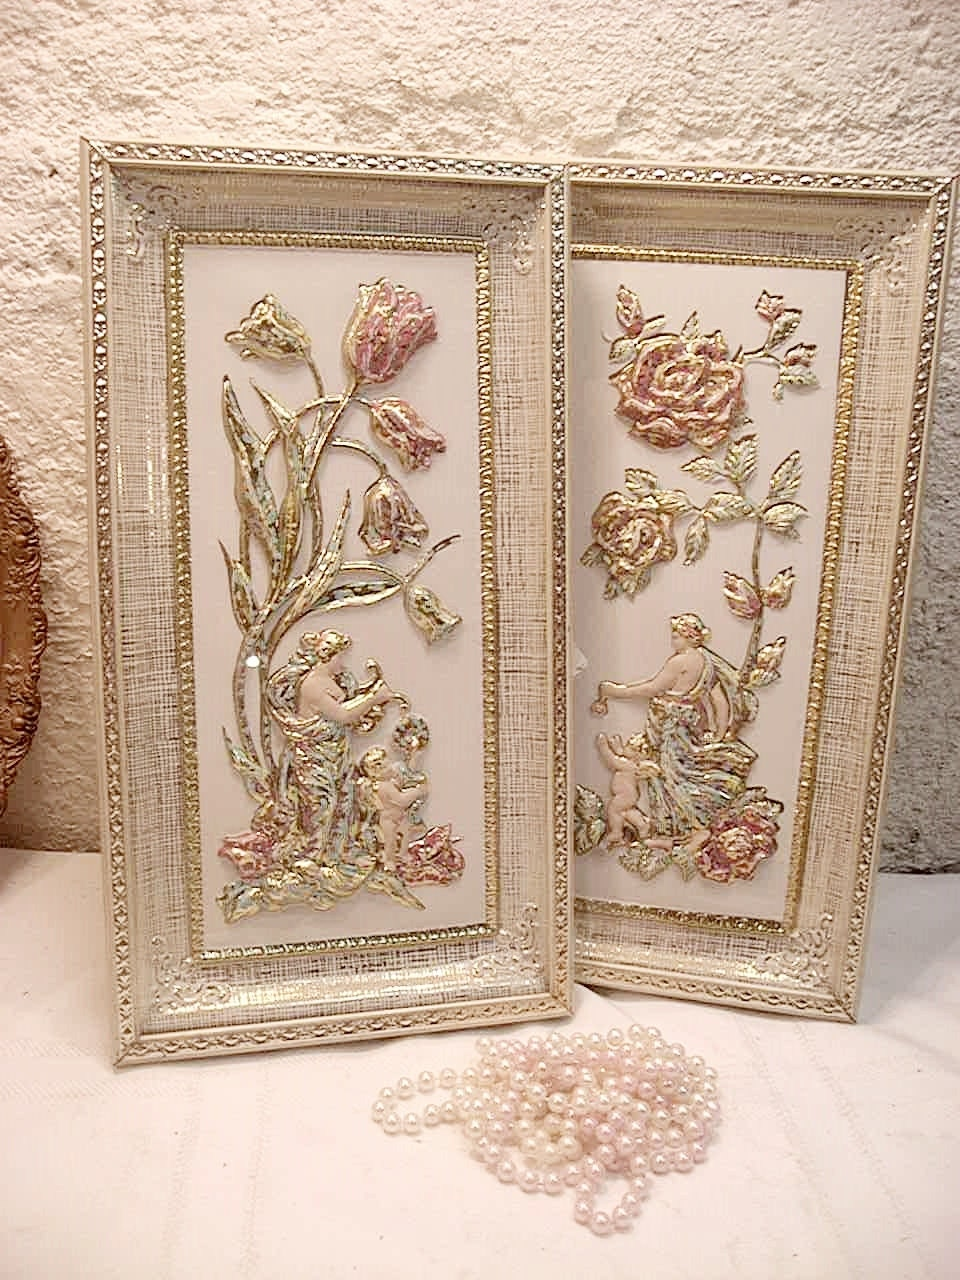 Vintage victorian wall art framed wall by annclarkinteriors for Victorian wall decor